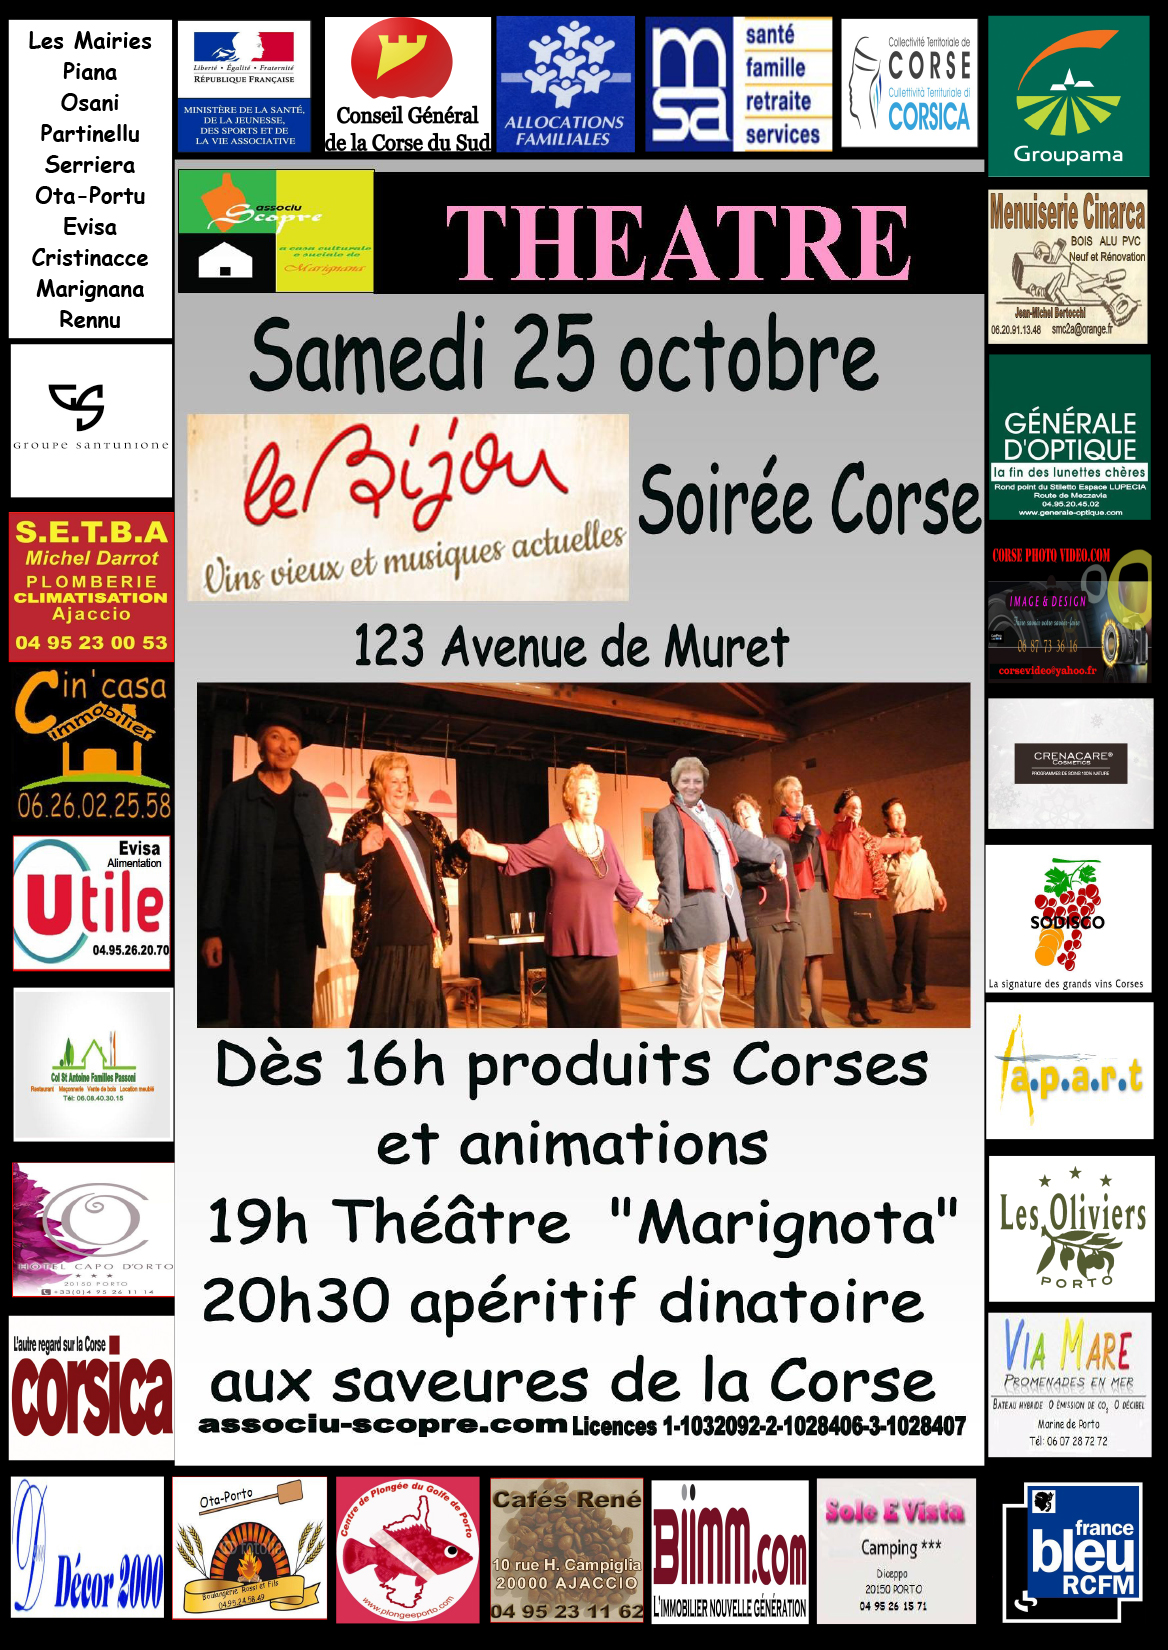 Rencontres amicales hyeres